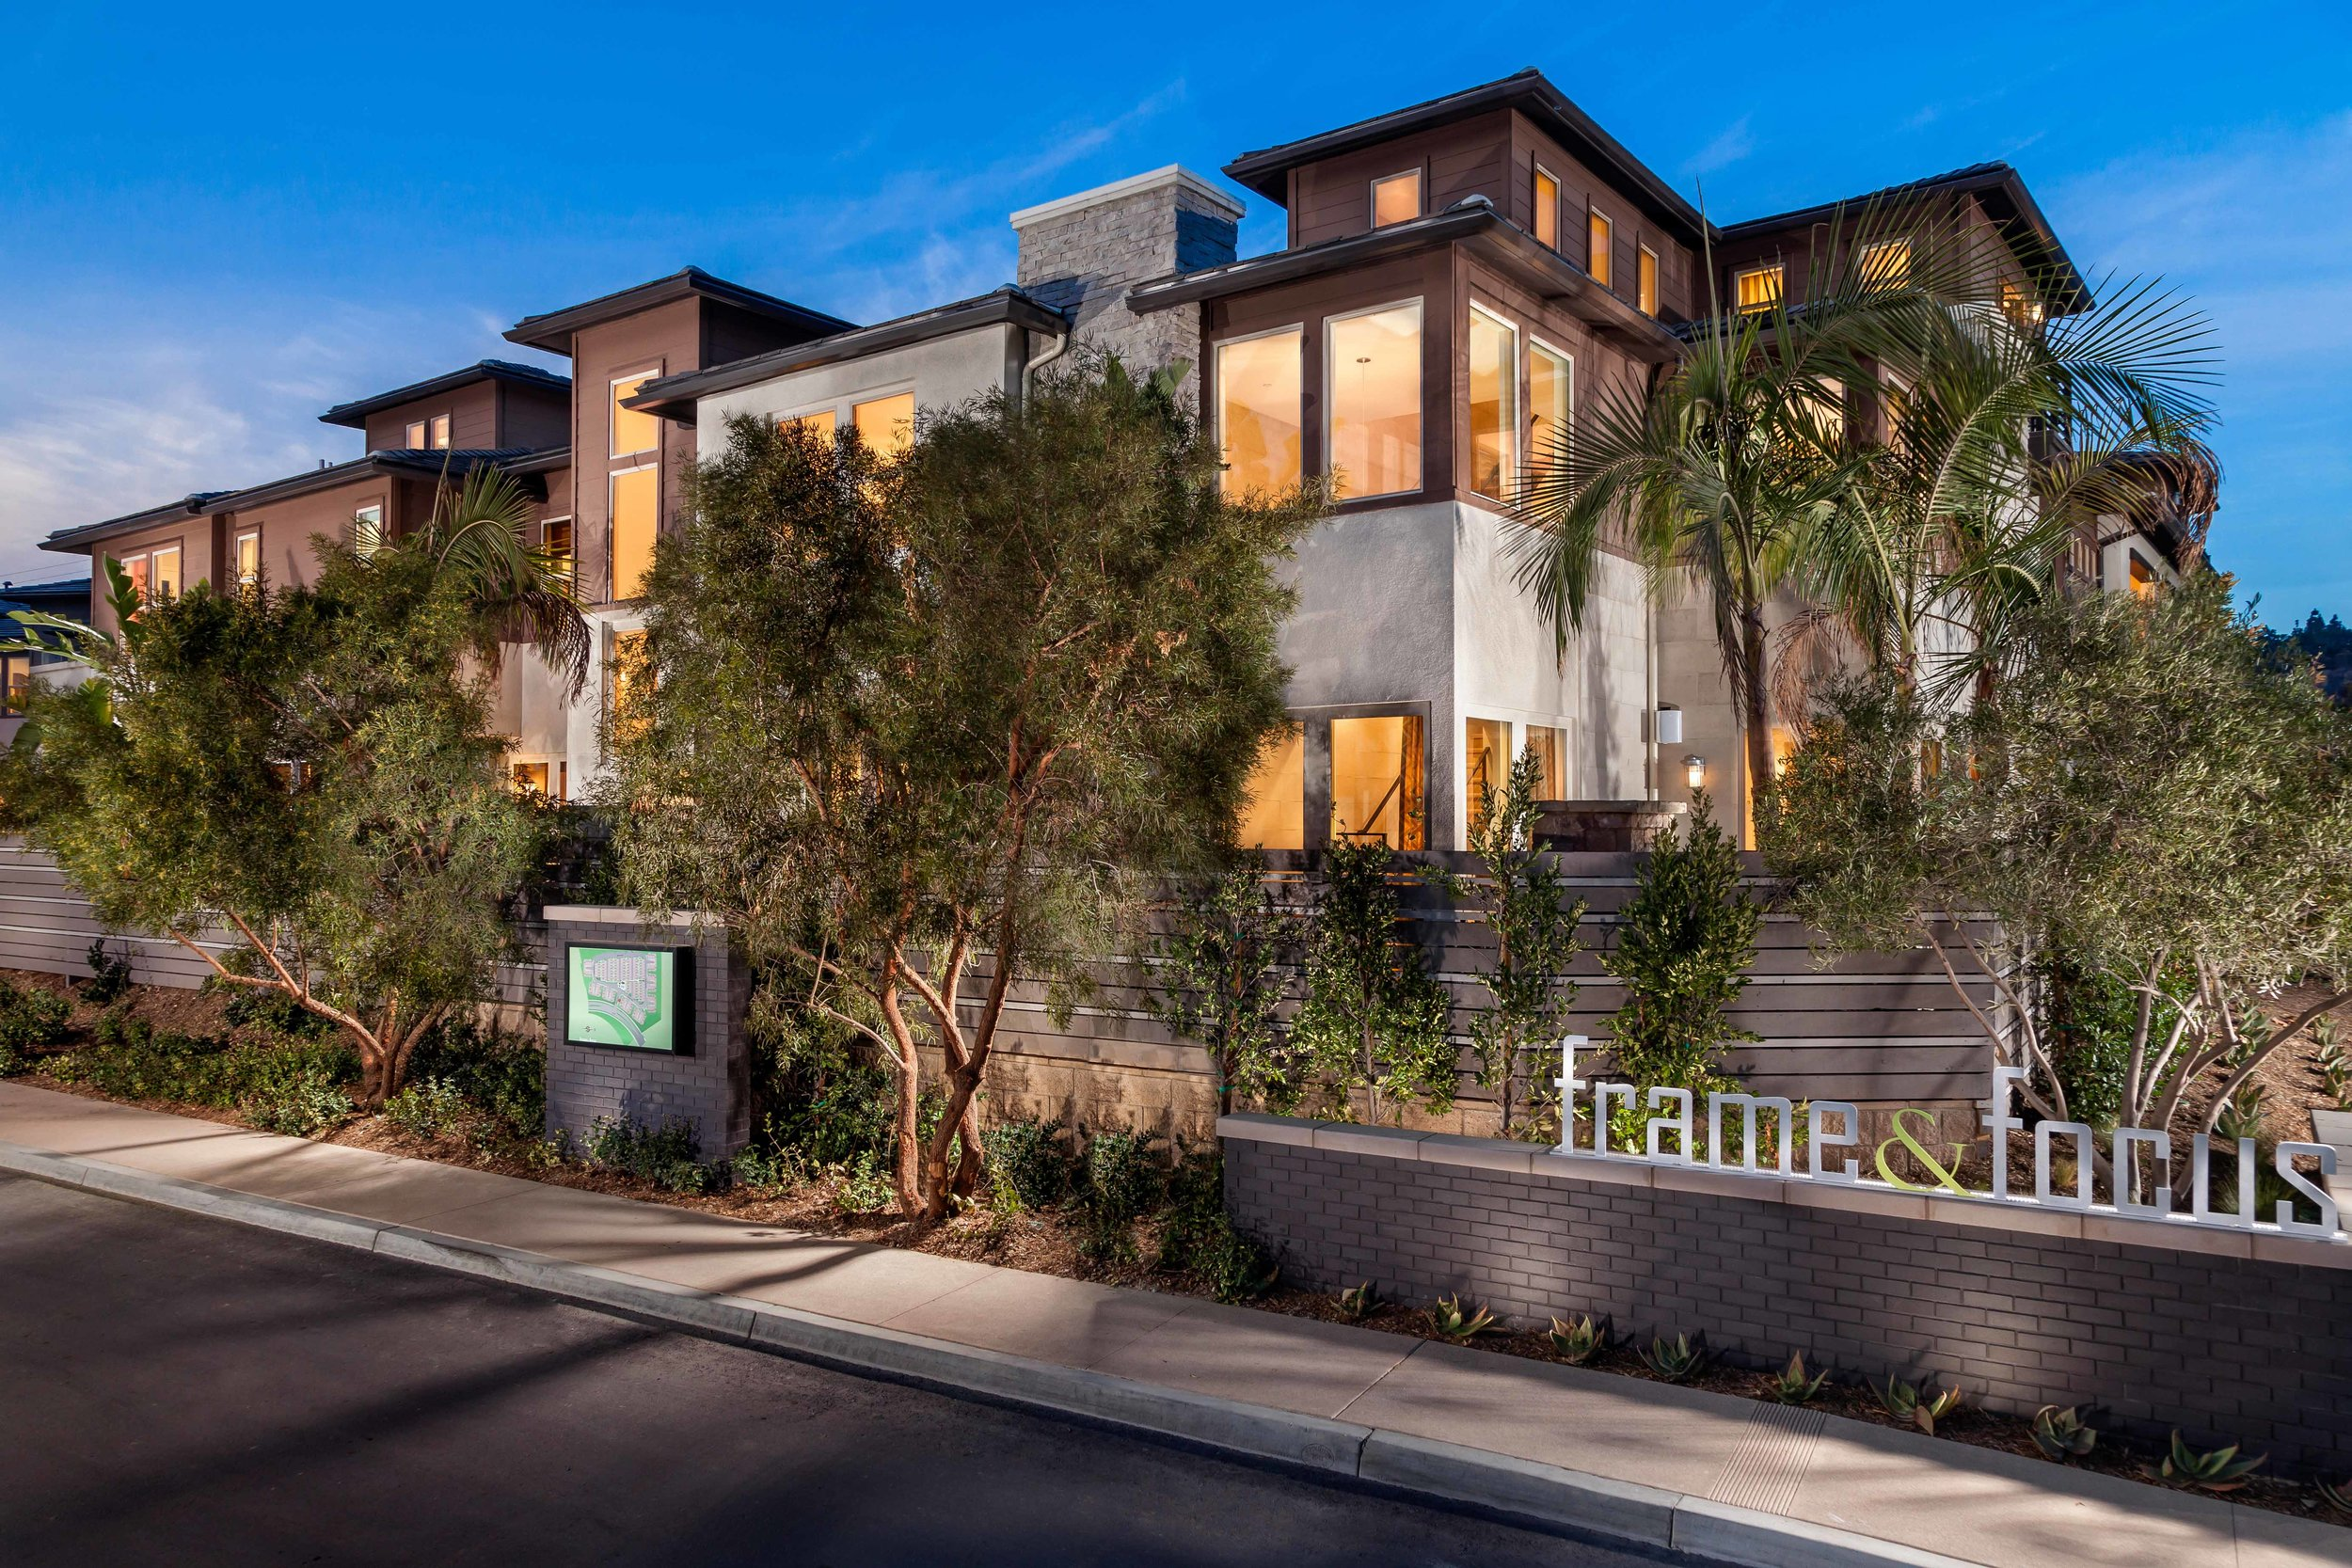 Frame & Focus   | San Diego, California    AWARDS  +  2015 National Gold Award  for Best Architectural Design of an Attached Home Plan